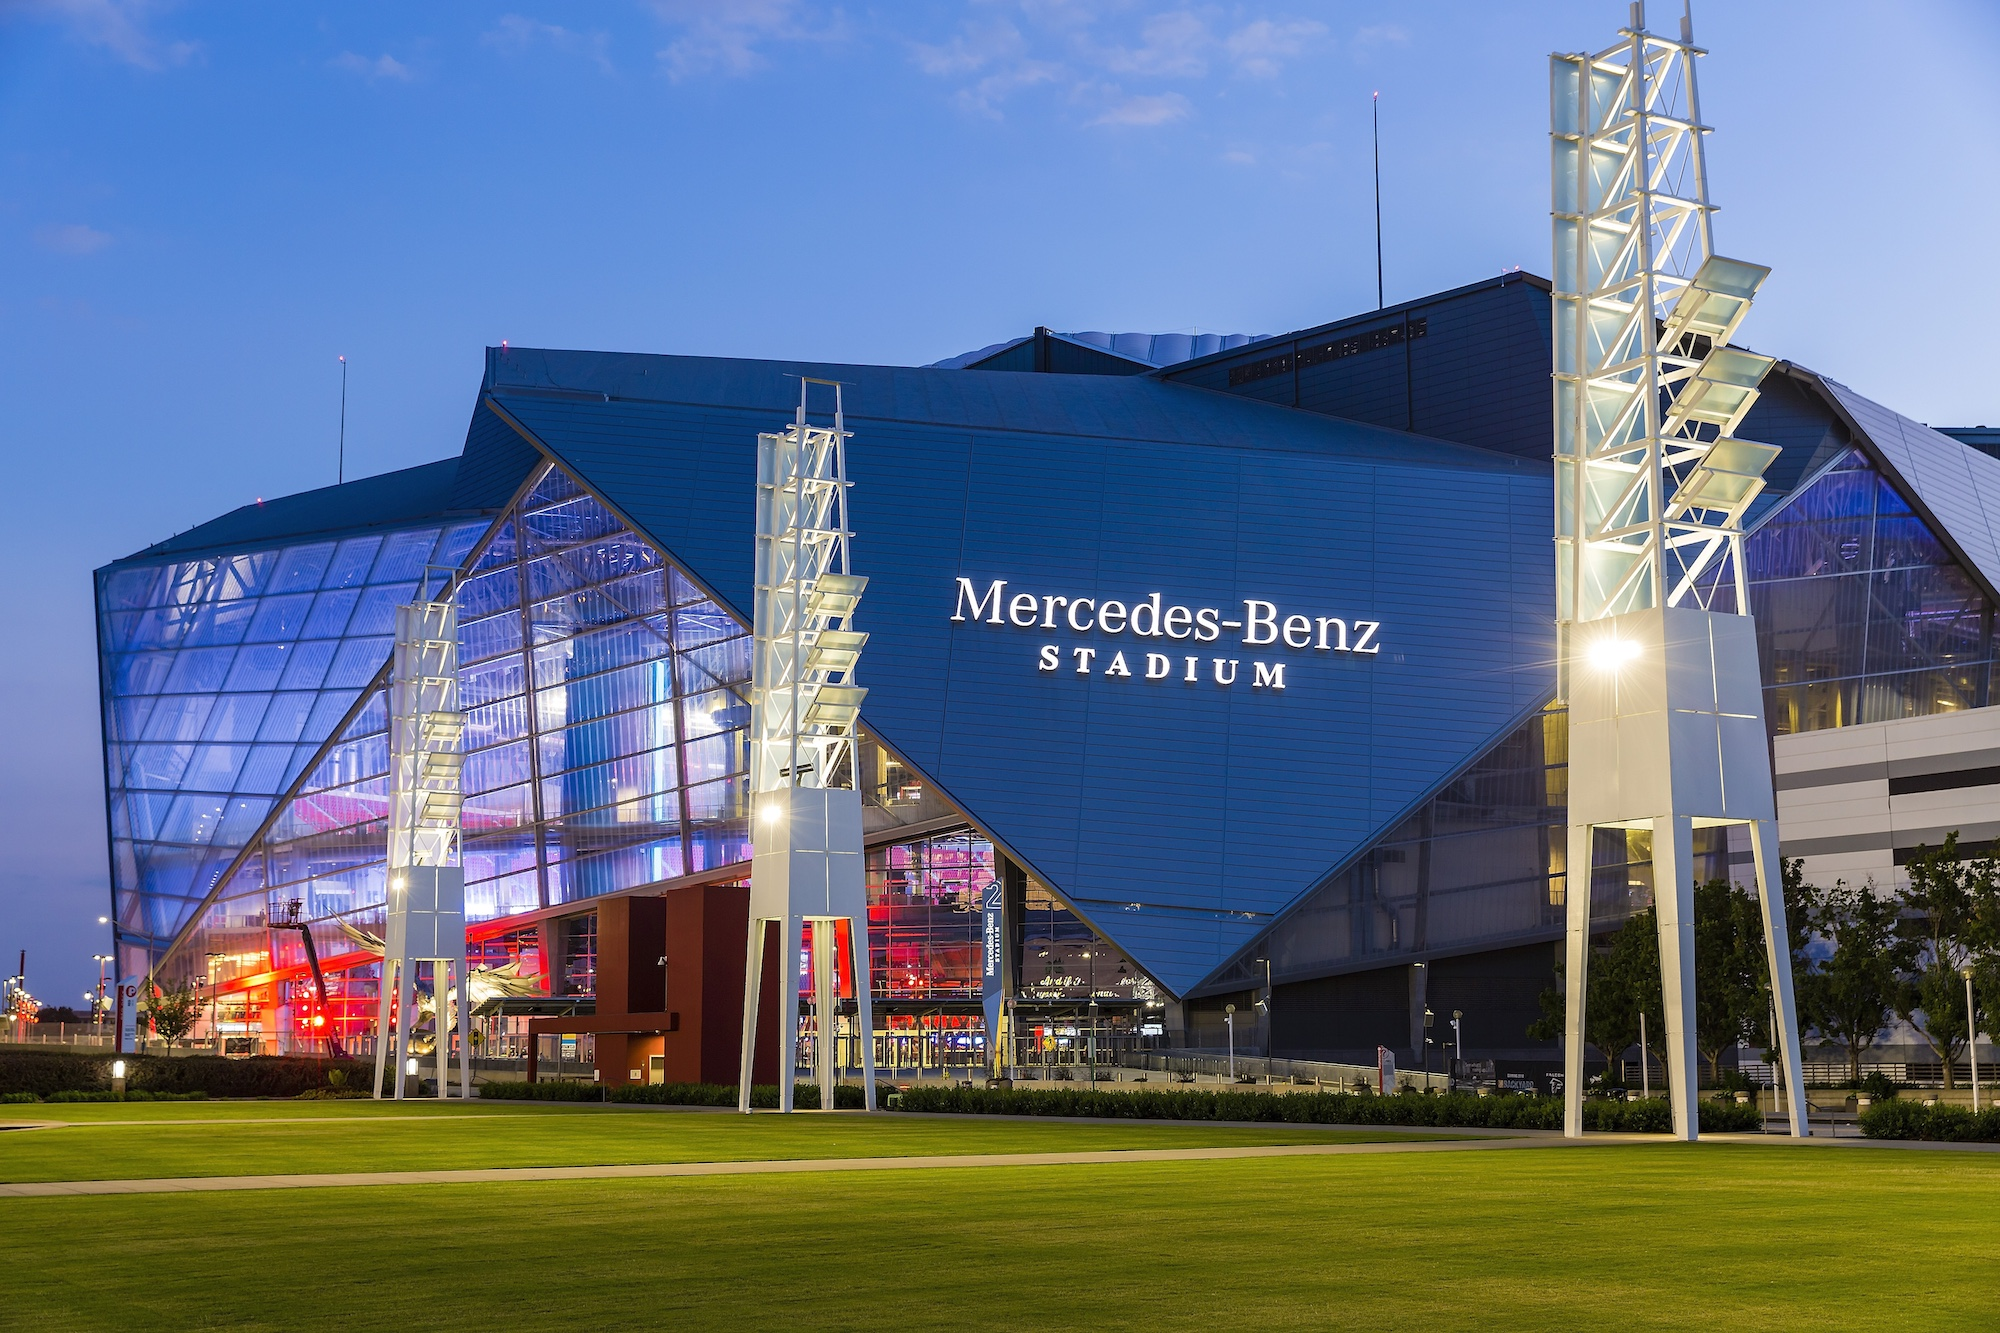 Mercedes benz stadium celebration bowl stadium journey for Who owns mercedes benz stadium